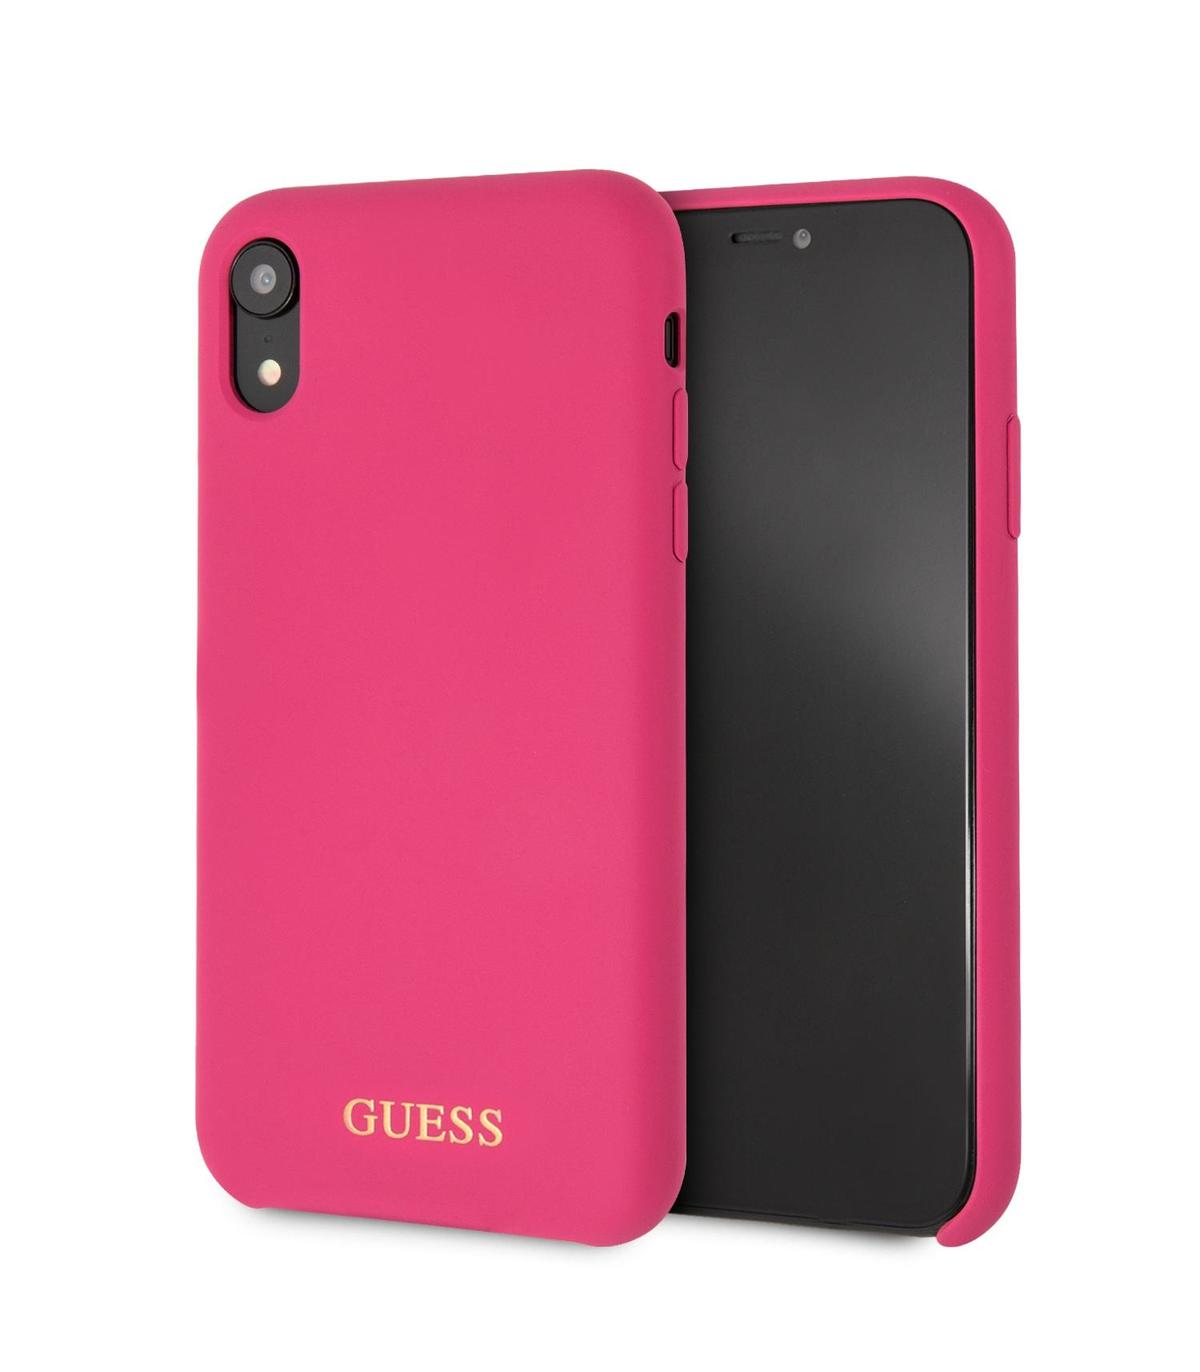 0aba4909974 Guess funda Apple iPhone XR silicona rosa logo dorado